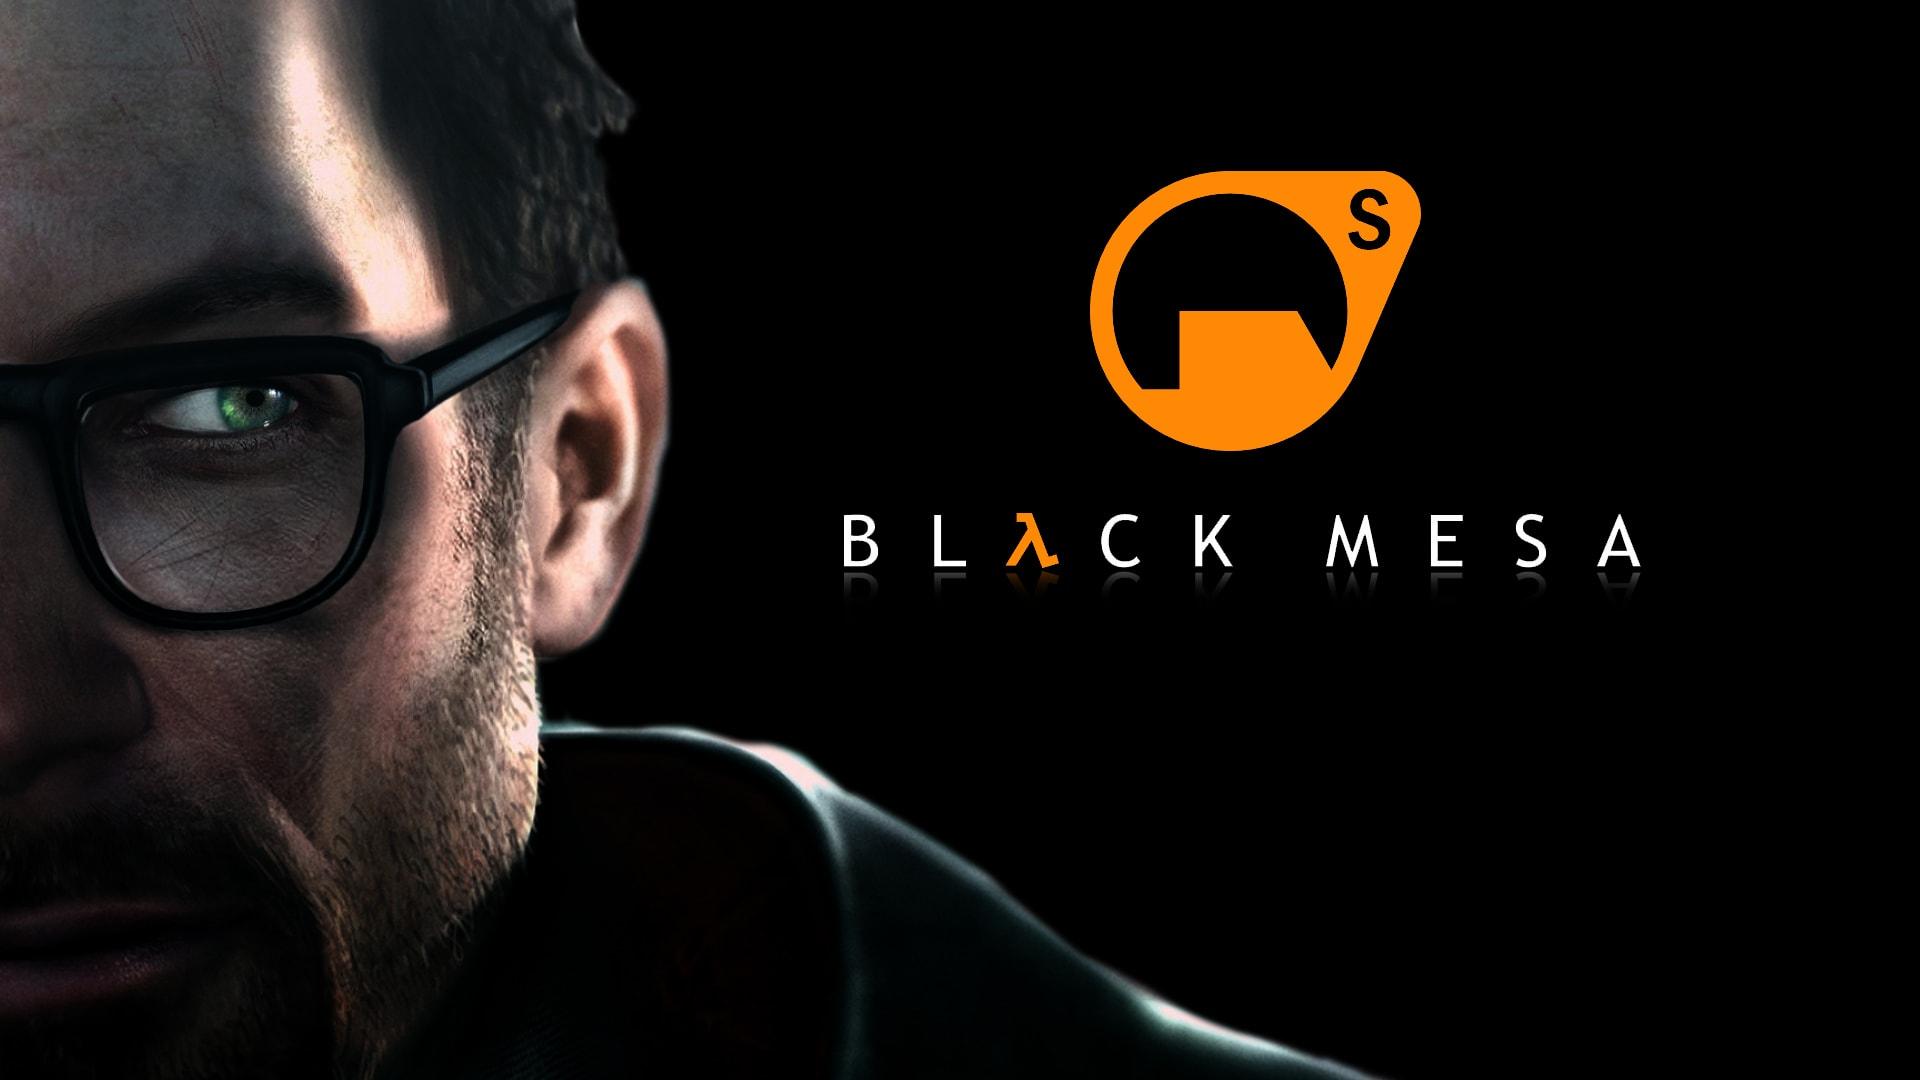 Update of Black Mesa on May 1 2018